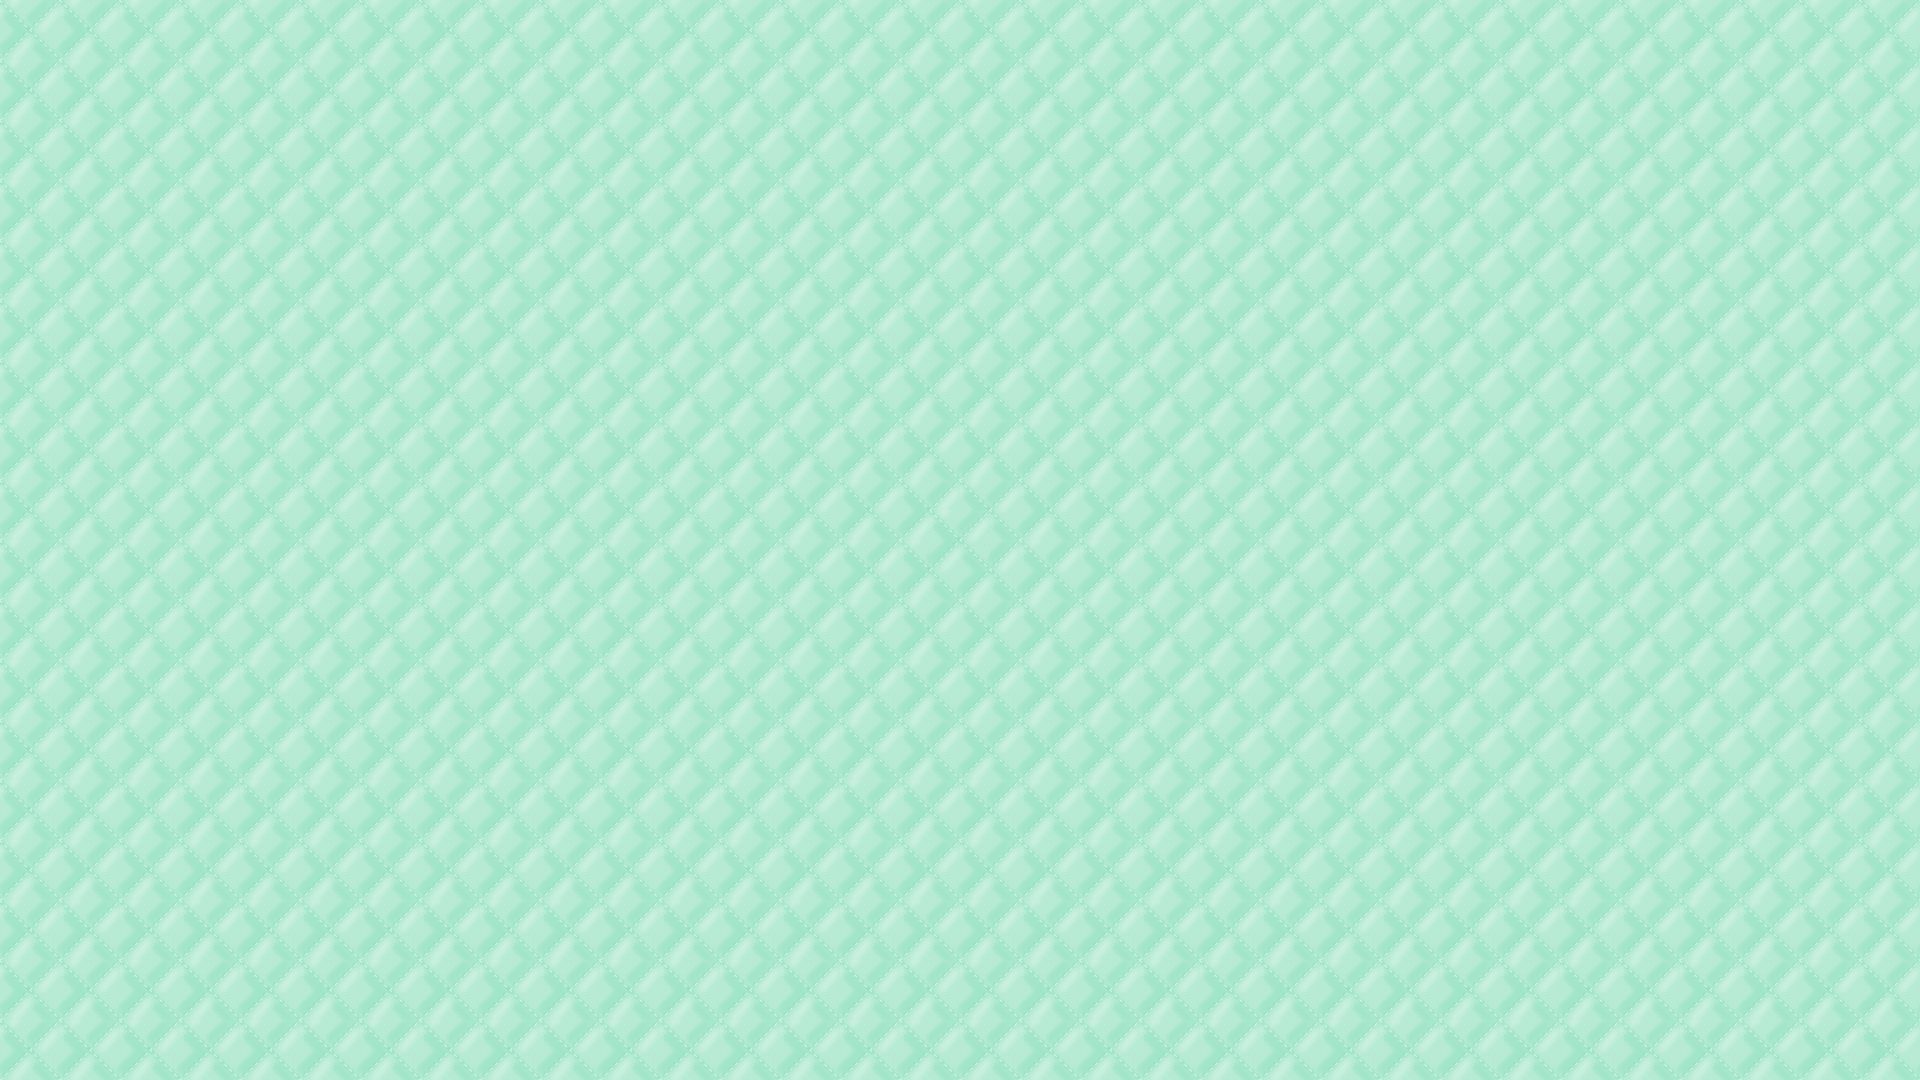 Mint Green Background Tumblr Images Pictures   Becuo 1920x1080